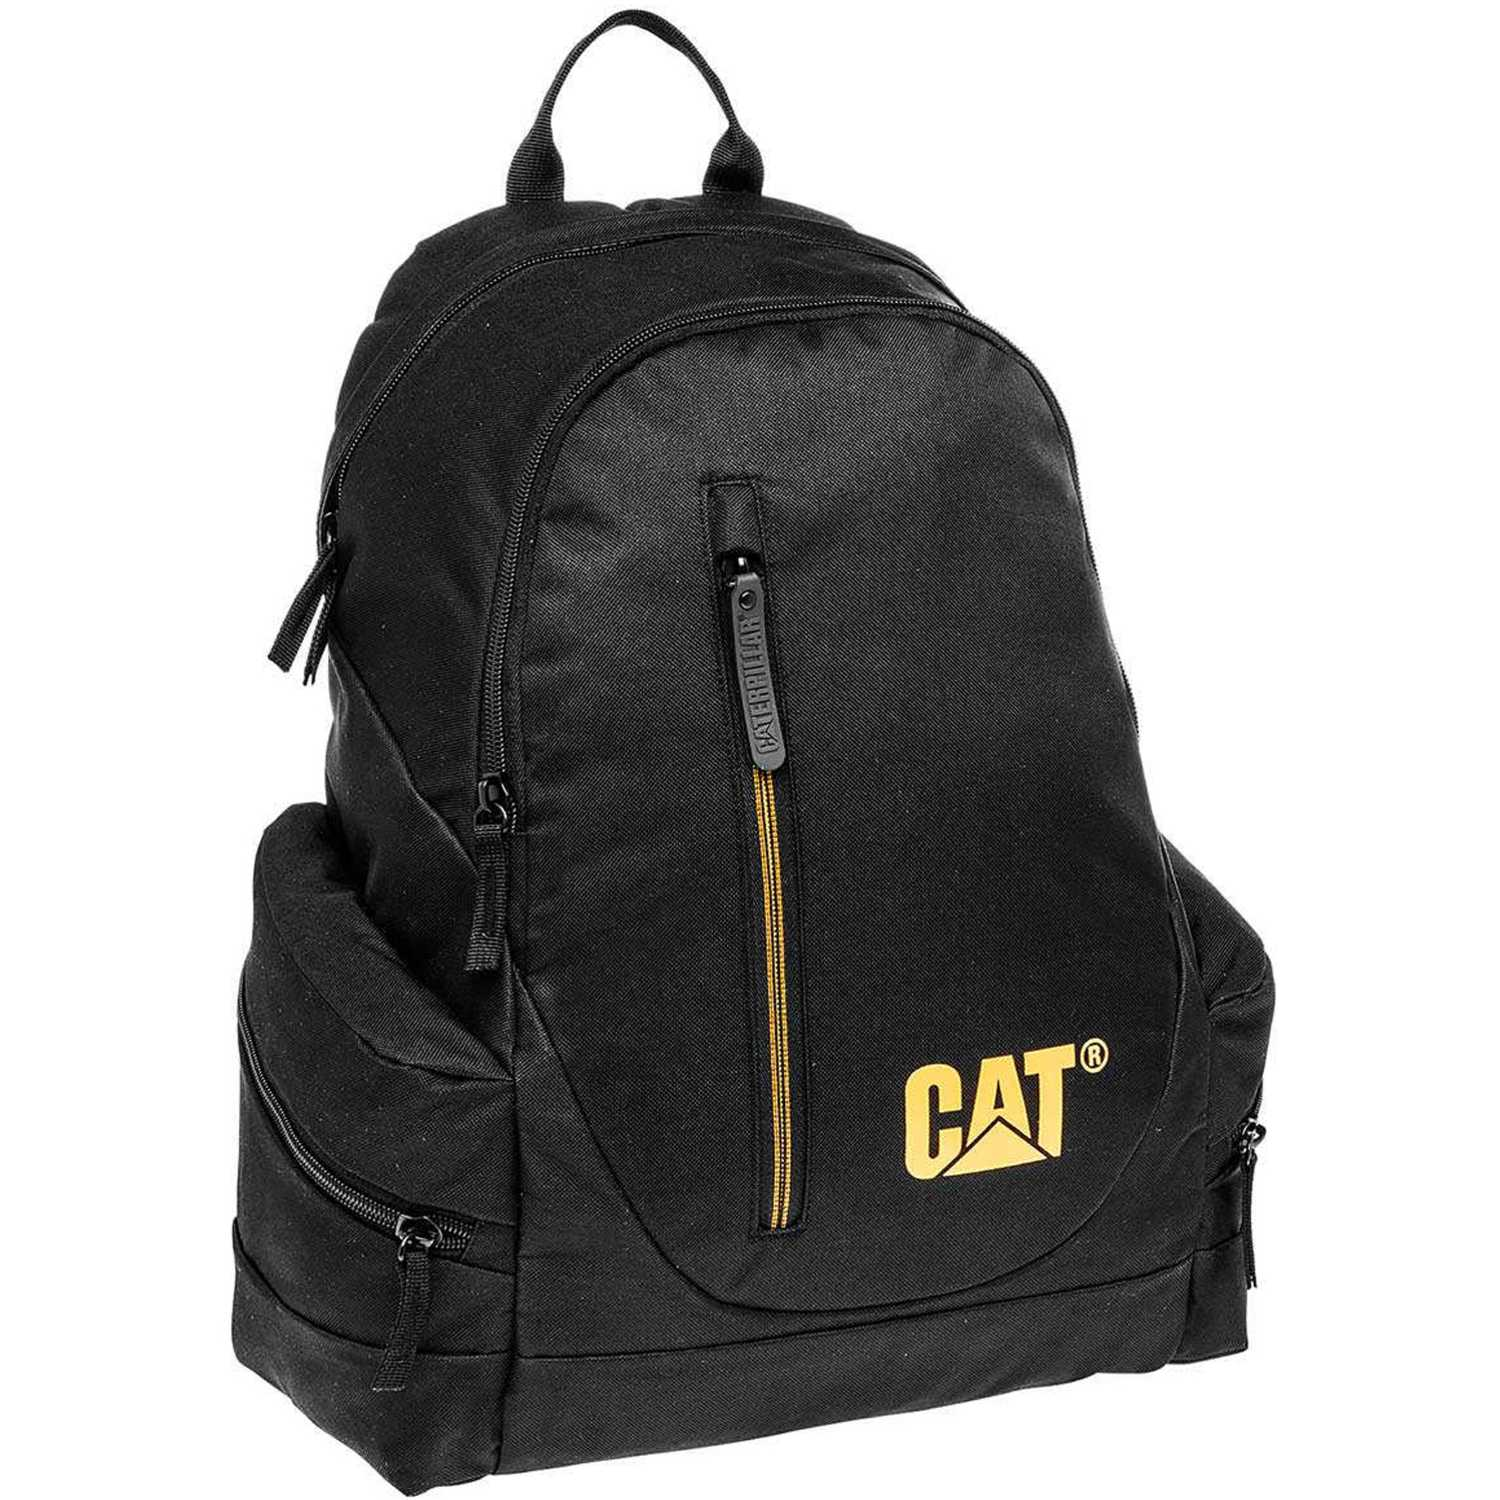 CAT backpack Negro Mochilas Multipropósitos